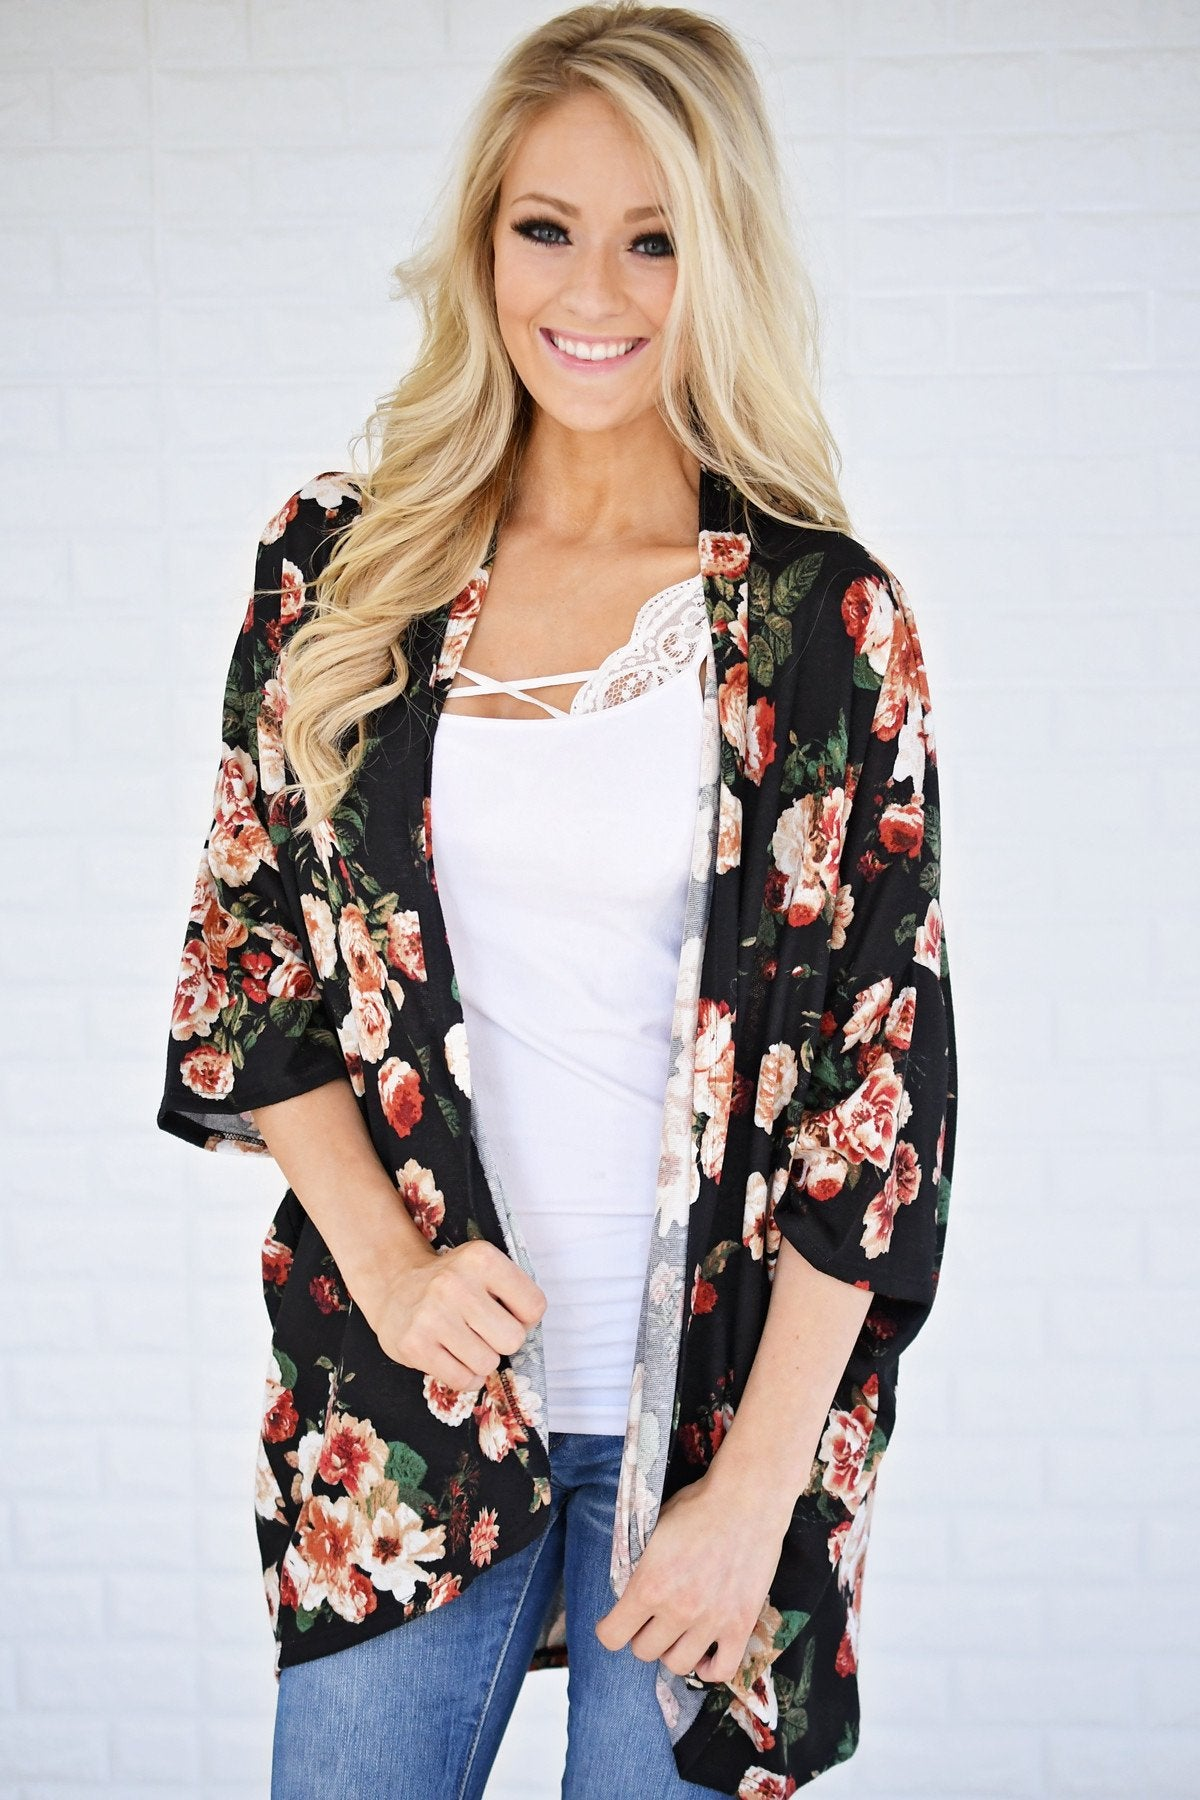 Find My Way Floral Cardigan - Black